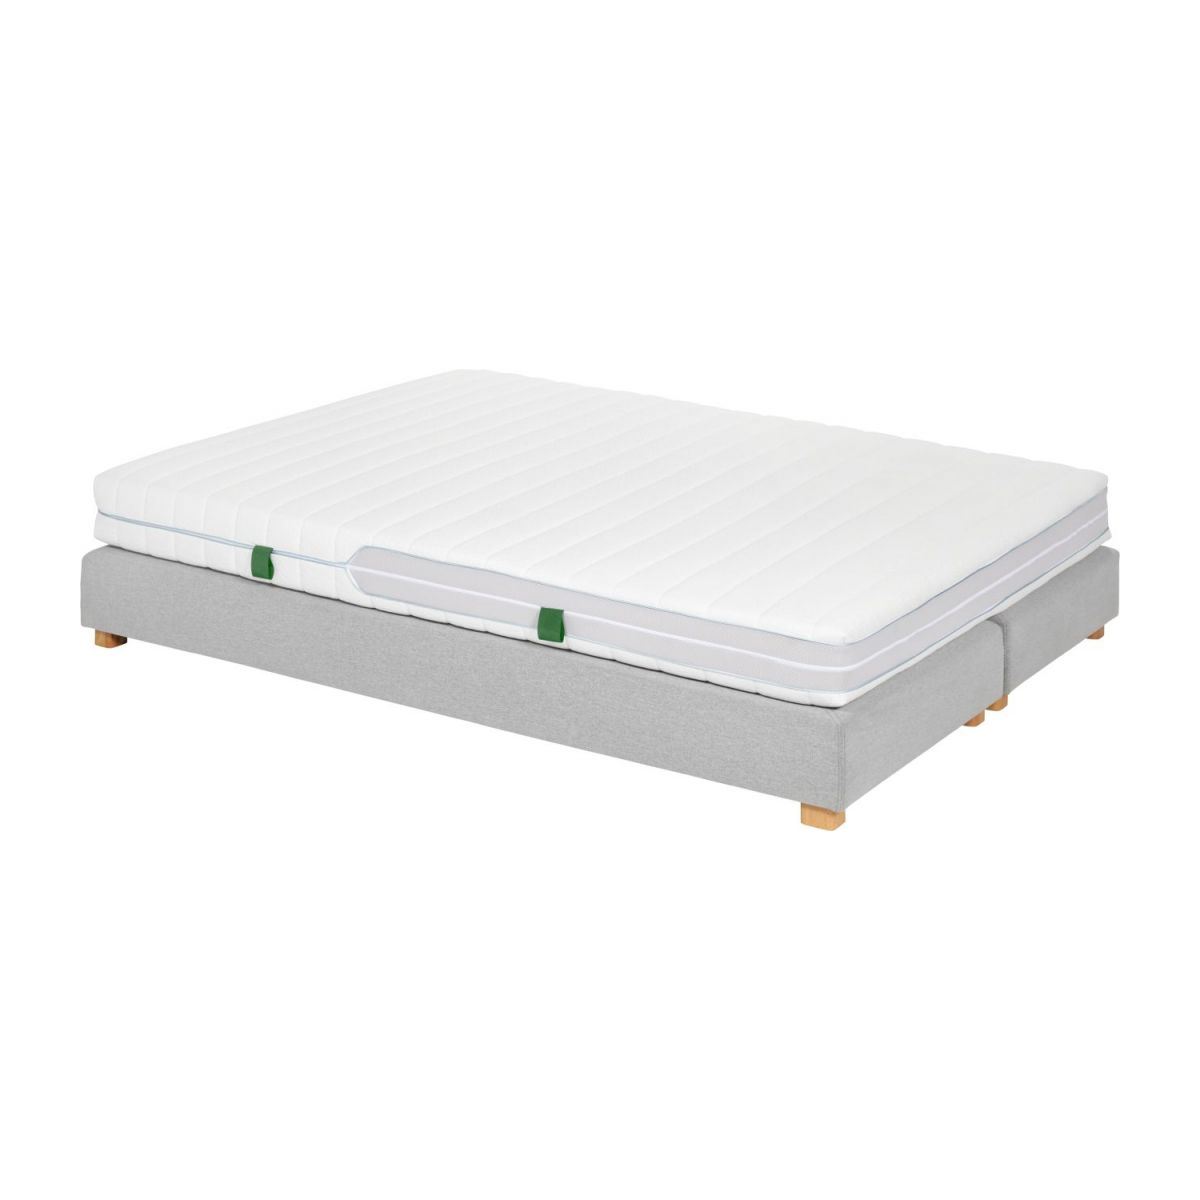 Matelas en latex, width 18 cm, 160x200cm - medium support n°5